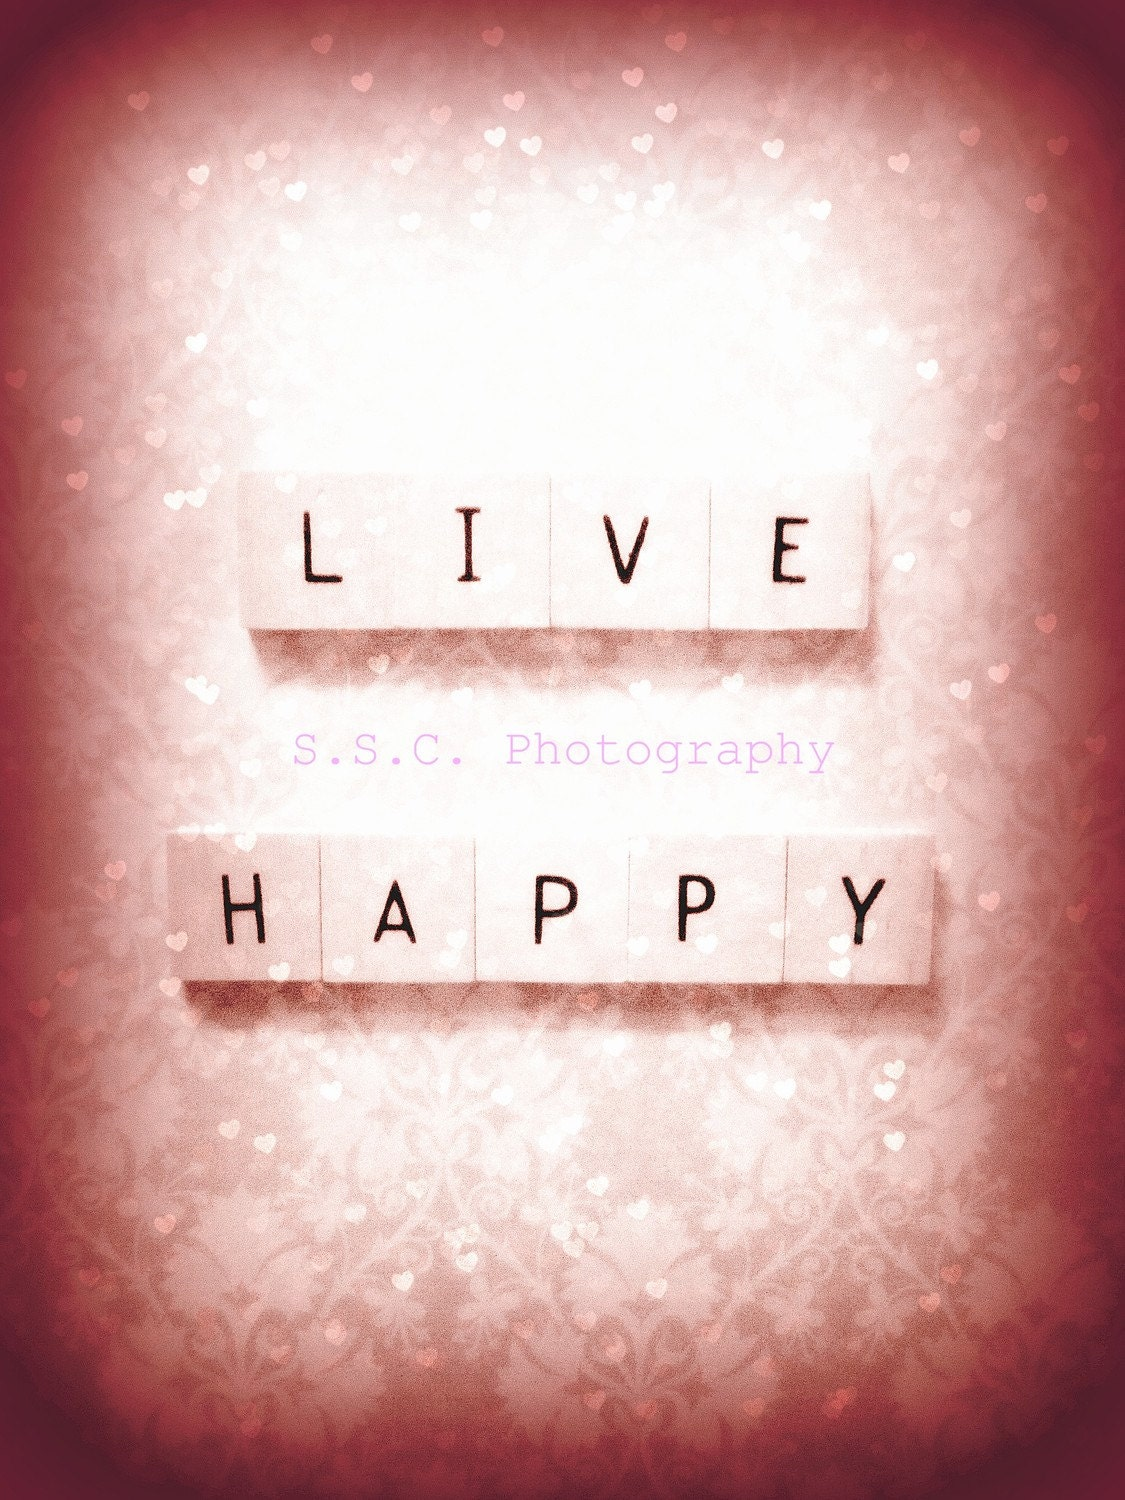 Live Happy 8.5 x 11 inch Photo w/thin white border for framing (NEW also available in larger sizes - see details)